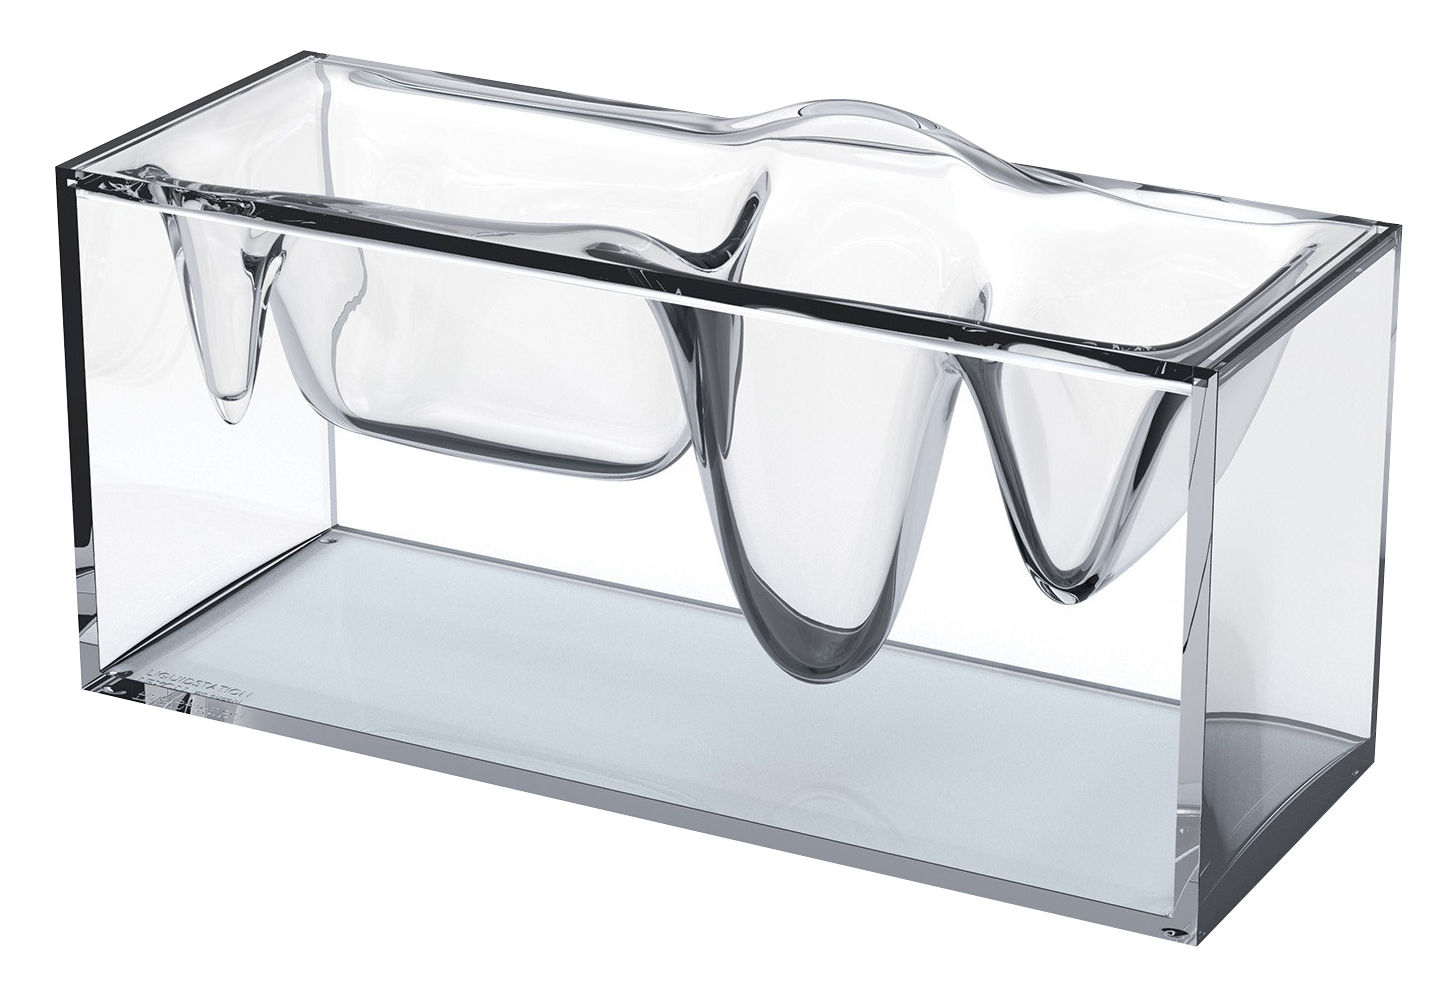 liquid station schreibtisch organizer von eugeni quitllet transparent by lexon made in design. Black Bedroom Furniture Sets. Home Design Ideas